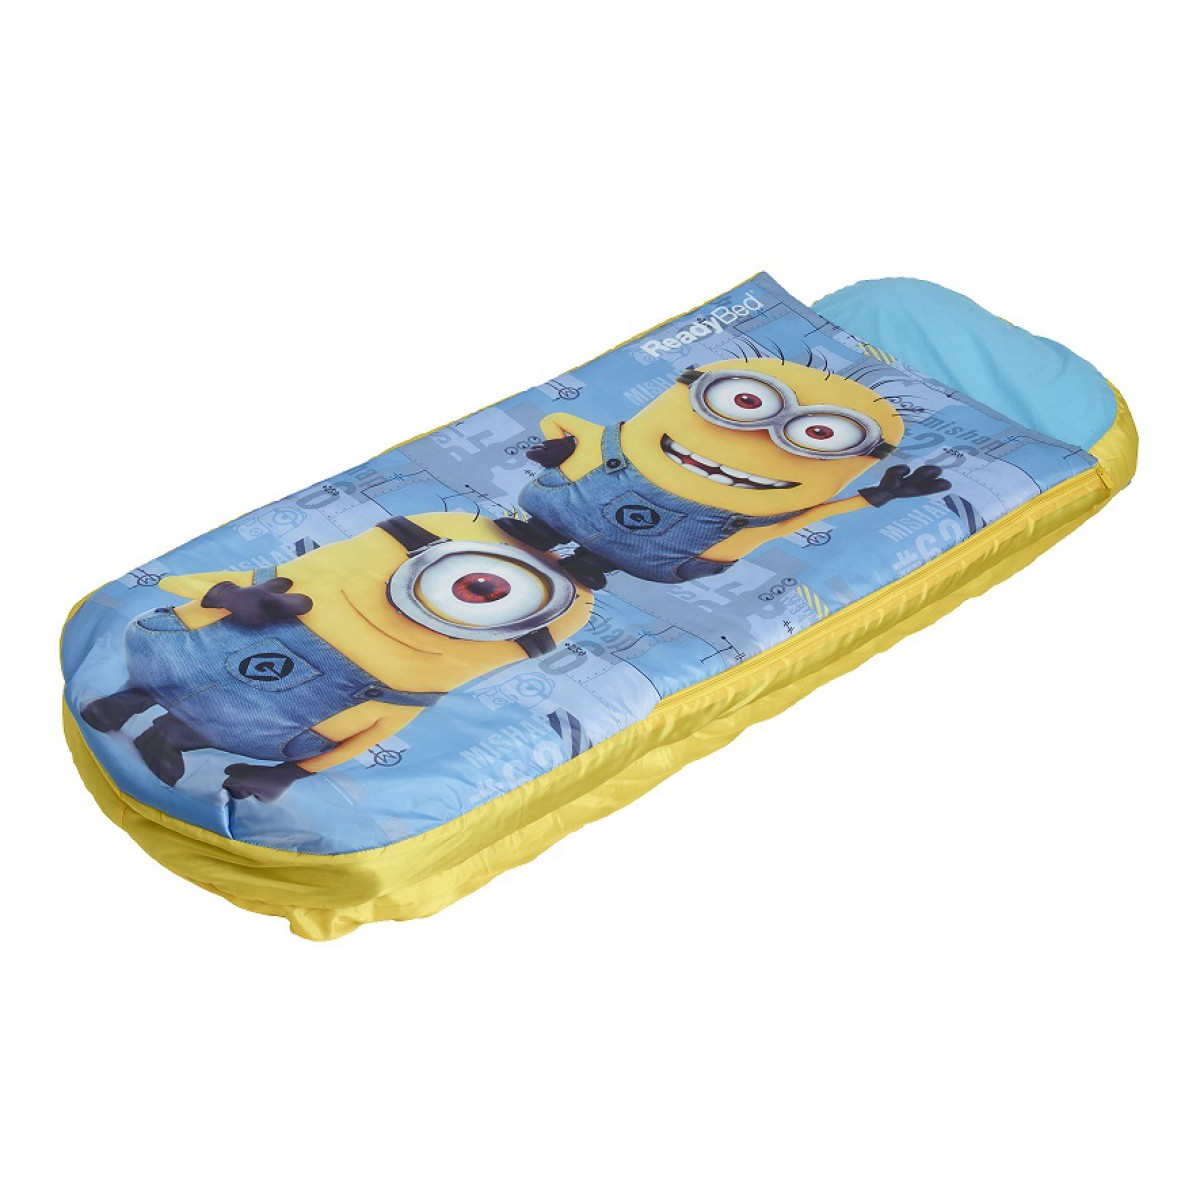 terre matelas gonflable les minions 60x150 de nuit. Black Bedroom Furniture Sets. Home Design Ideas